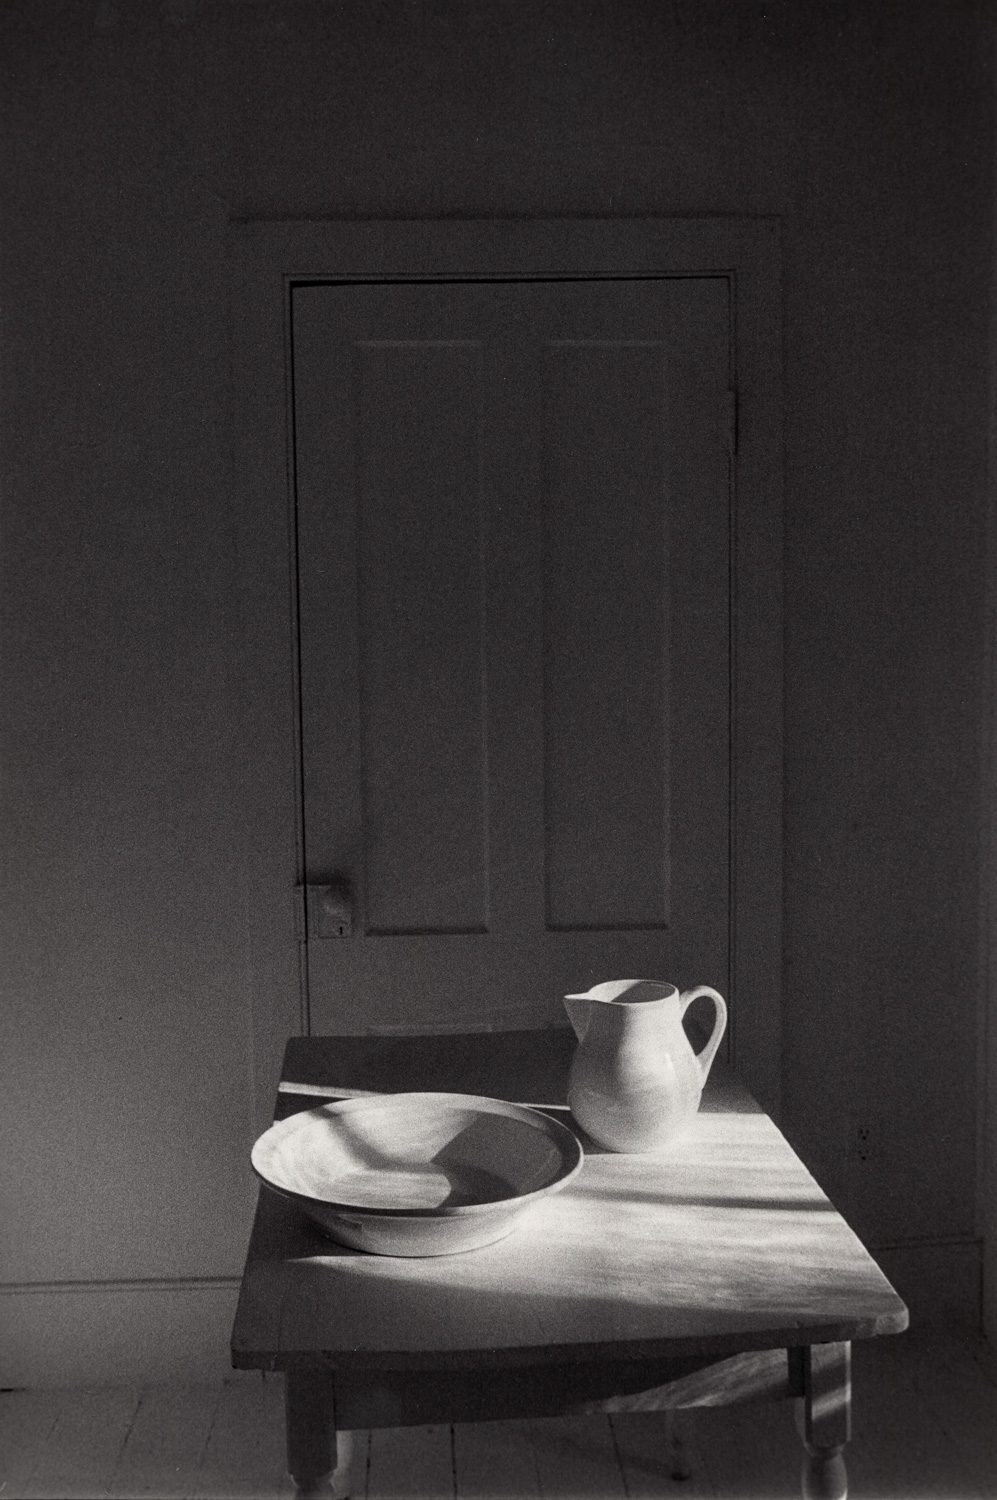 Pitcher and Bowl on Table in front of Door